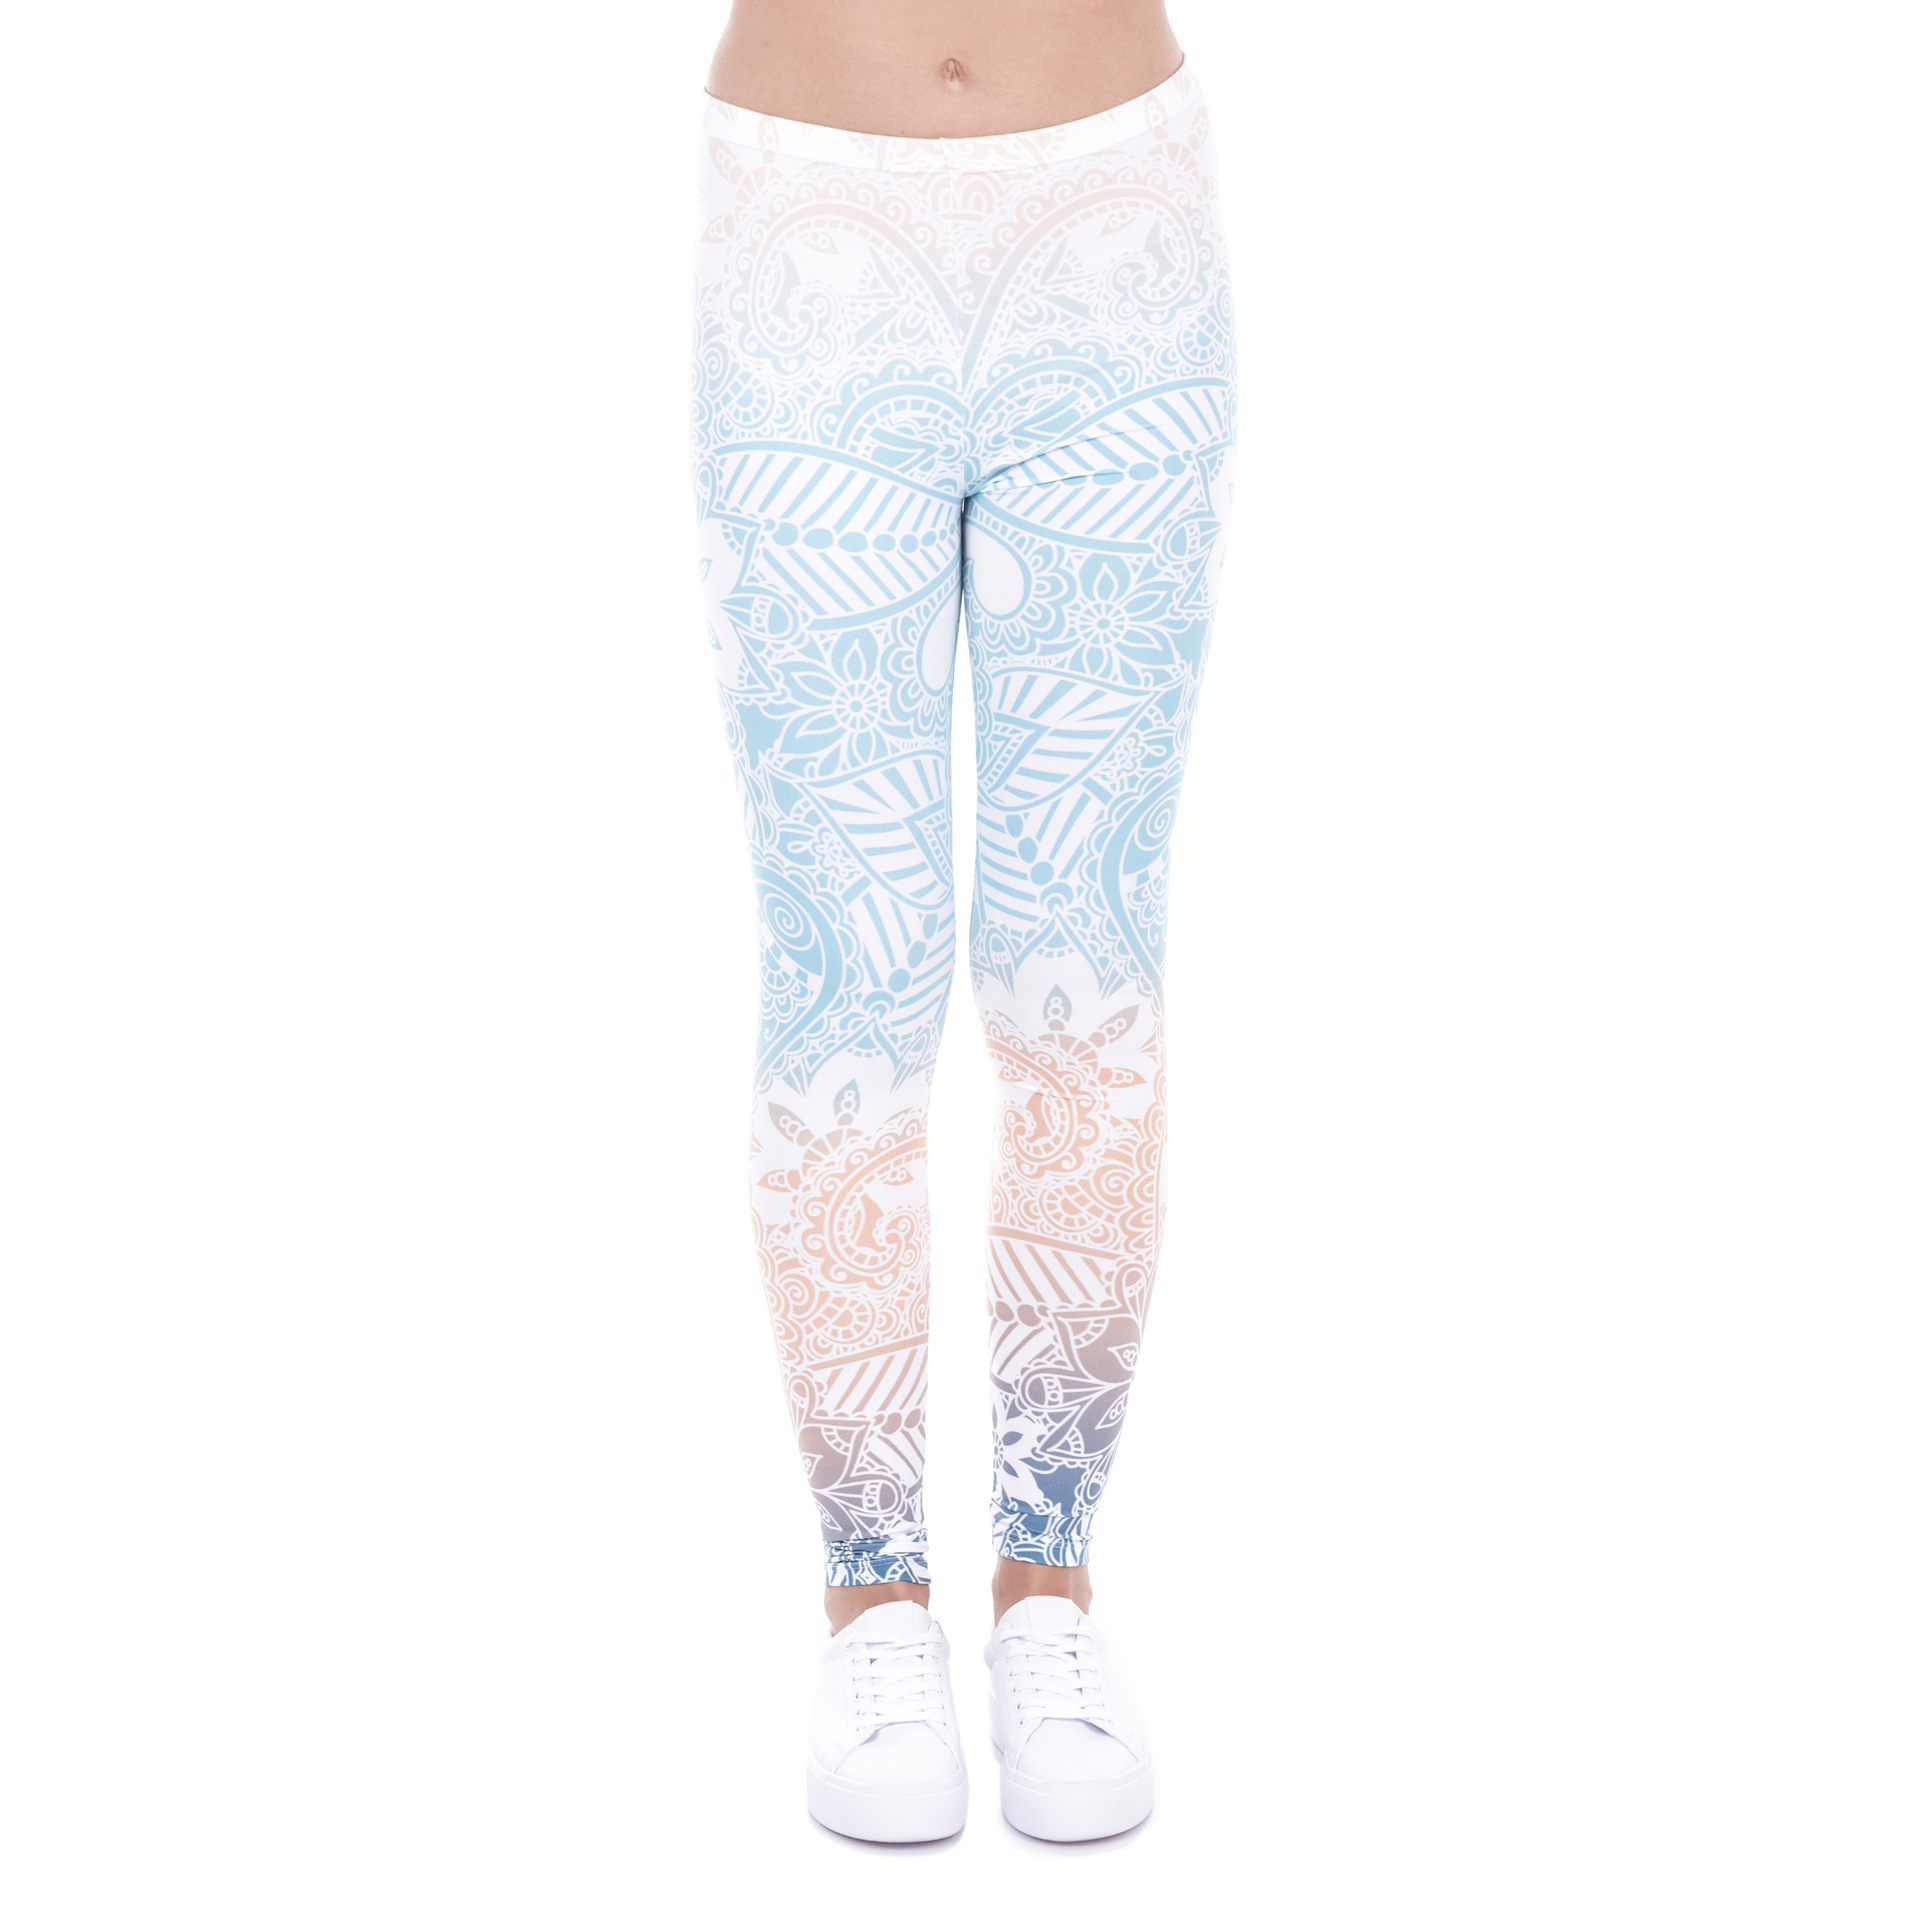 Zohra AliExpress Wish Hot Selling 3D Digital Printing Leggings Women's Amazon Eaby Cross Border Europe And America Foreign Trade